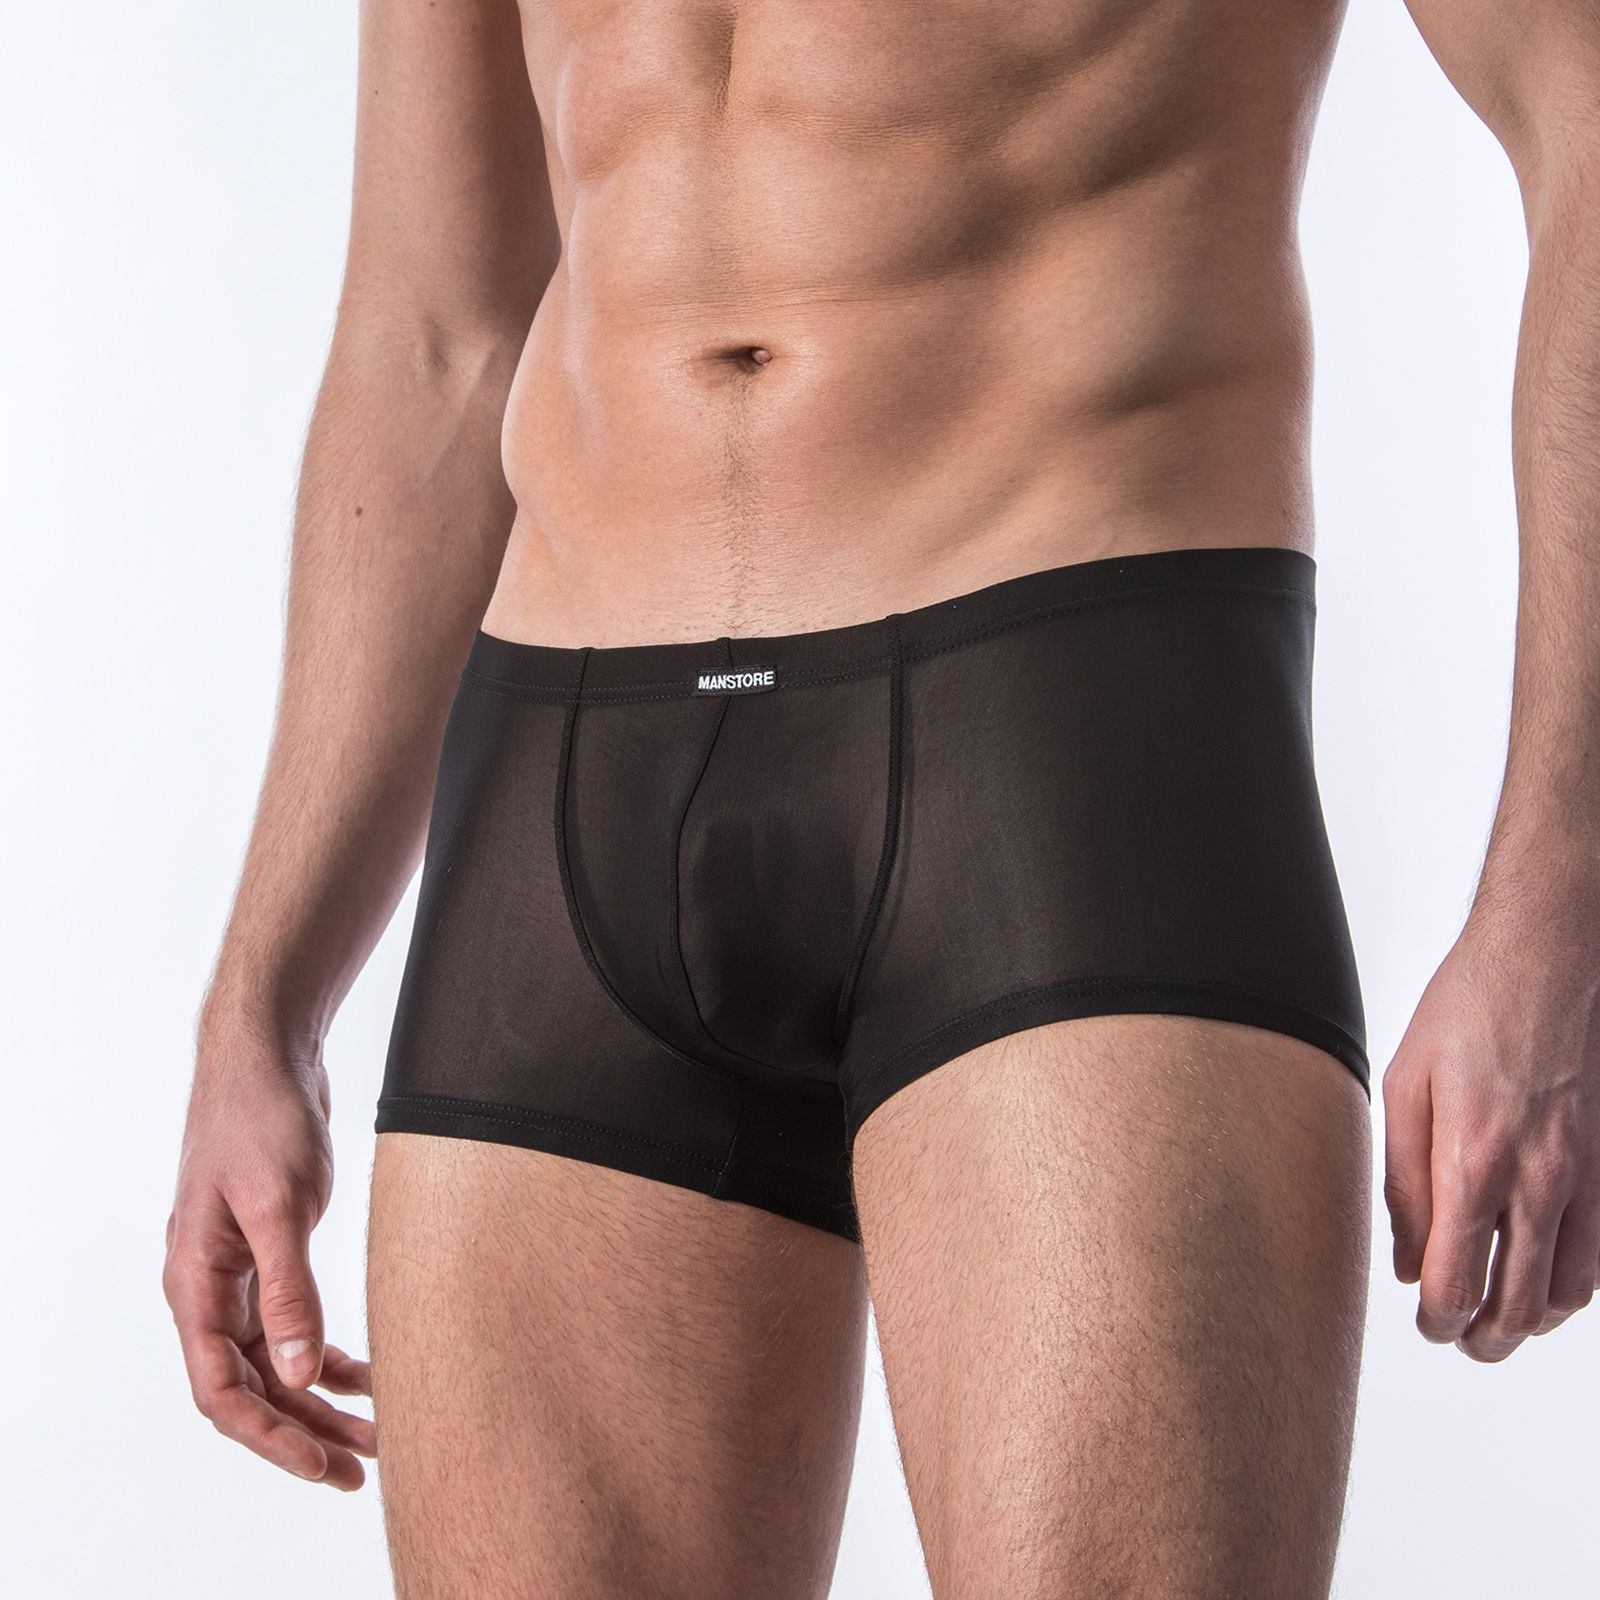 M101 Boxer Brief Manstore 206166